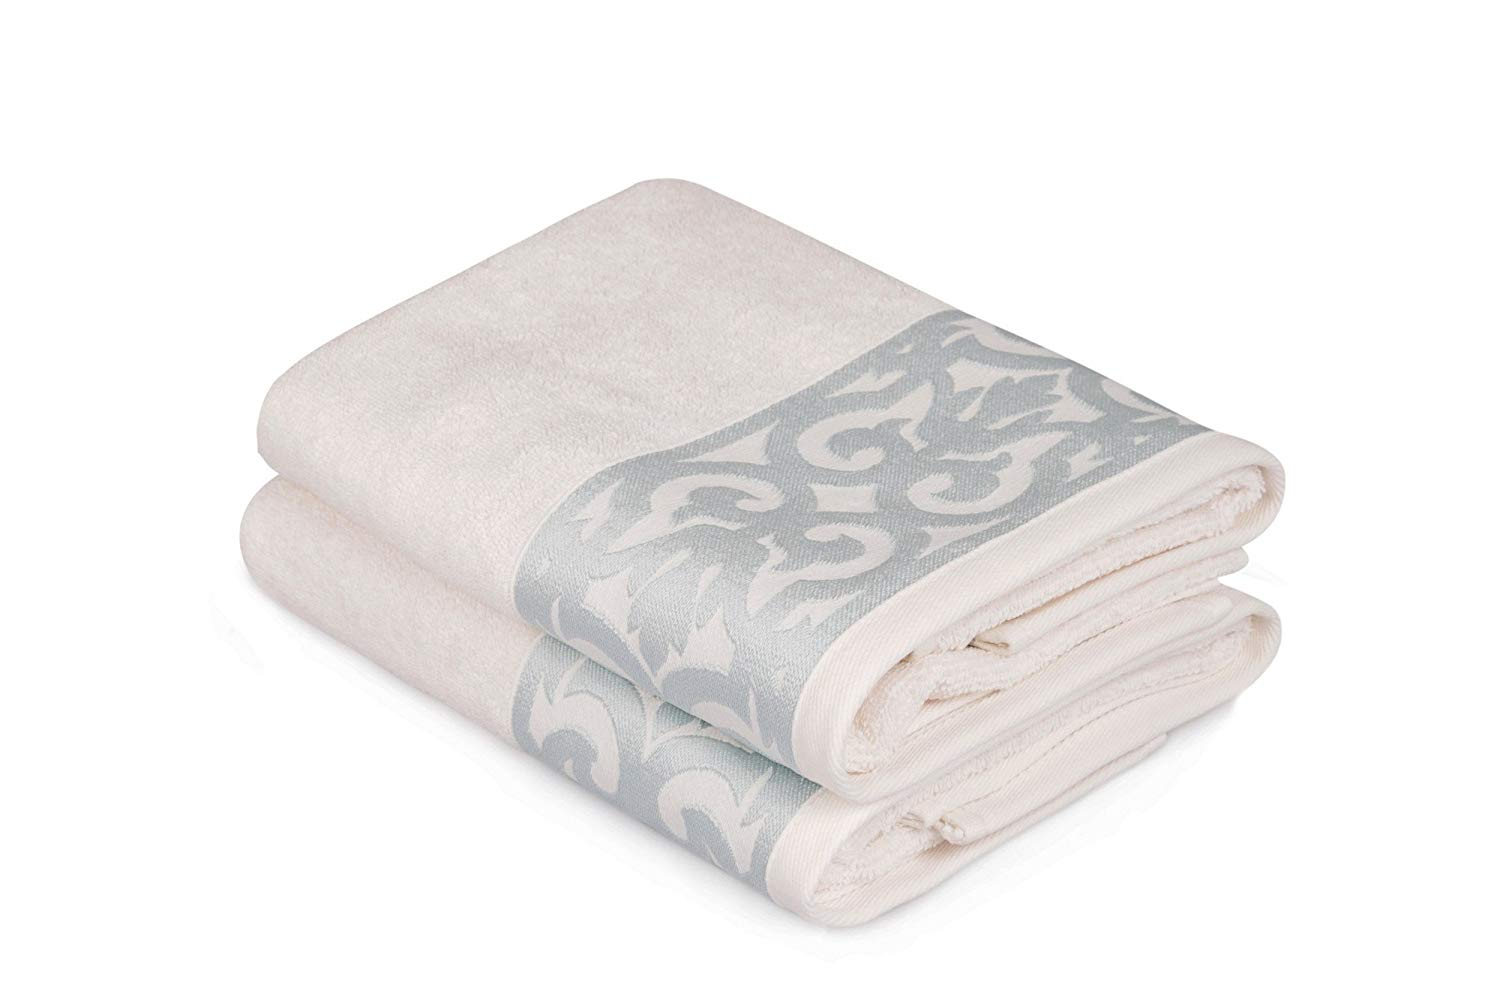 "LaModaHome 2 Pcs Hand Towel Set Premium Quality (19.7"" x 35.4"") 100% Cotton Hotel Quality/Motif Pattern Design Leaf Plant Grey And Cream/Soft Machine Washable Quick Dry Highly Absorbent"